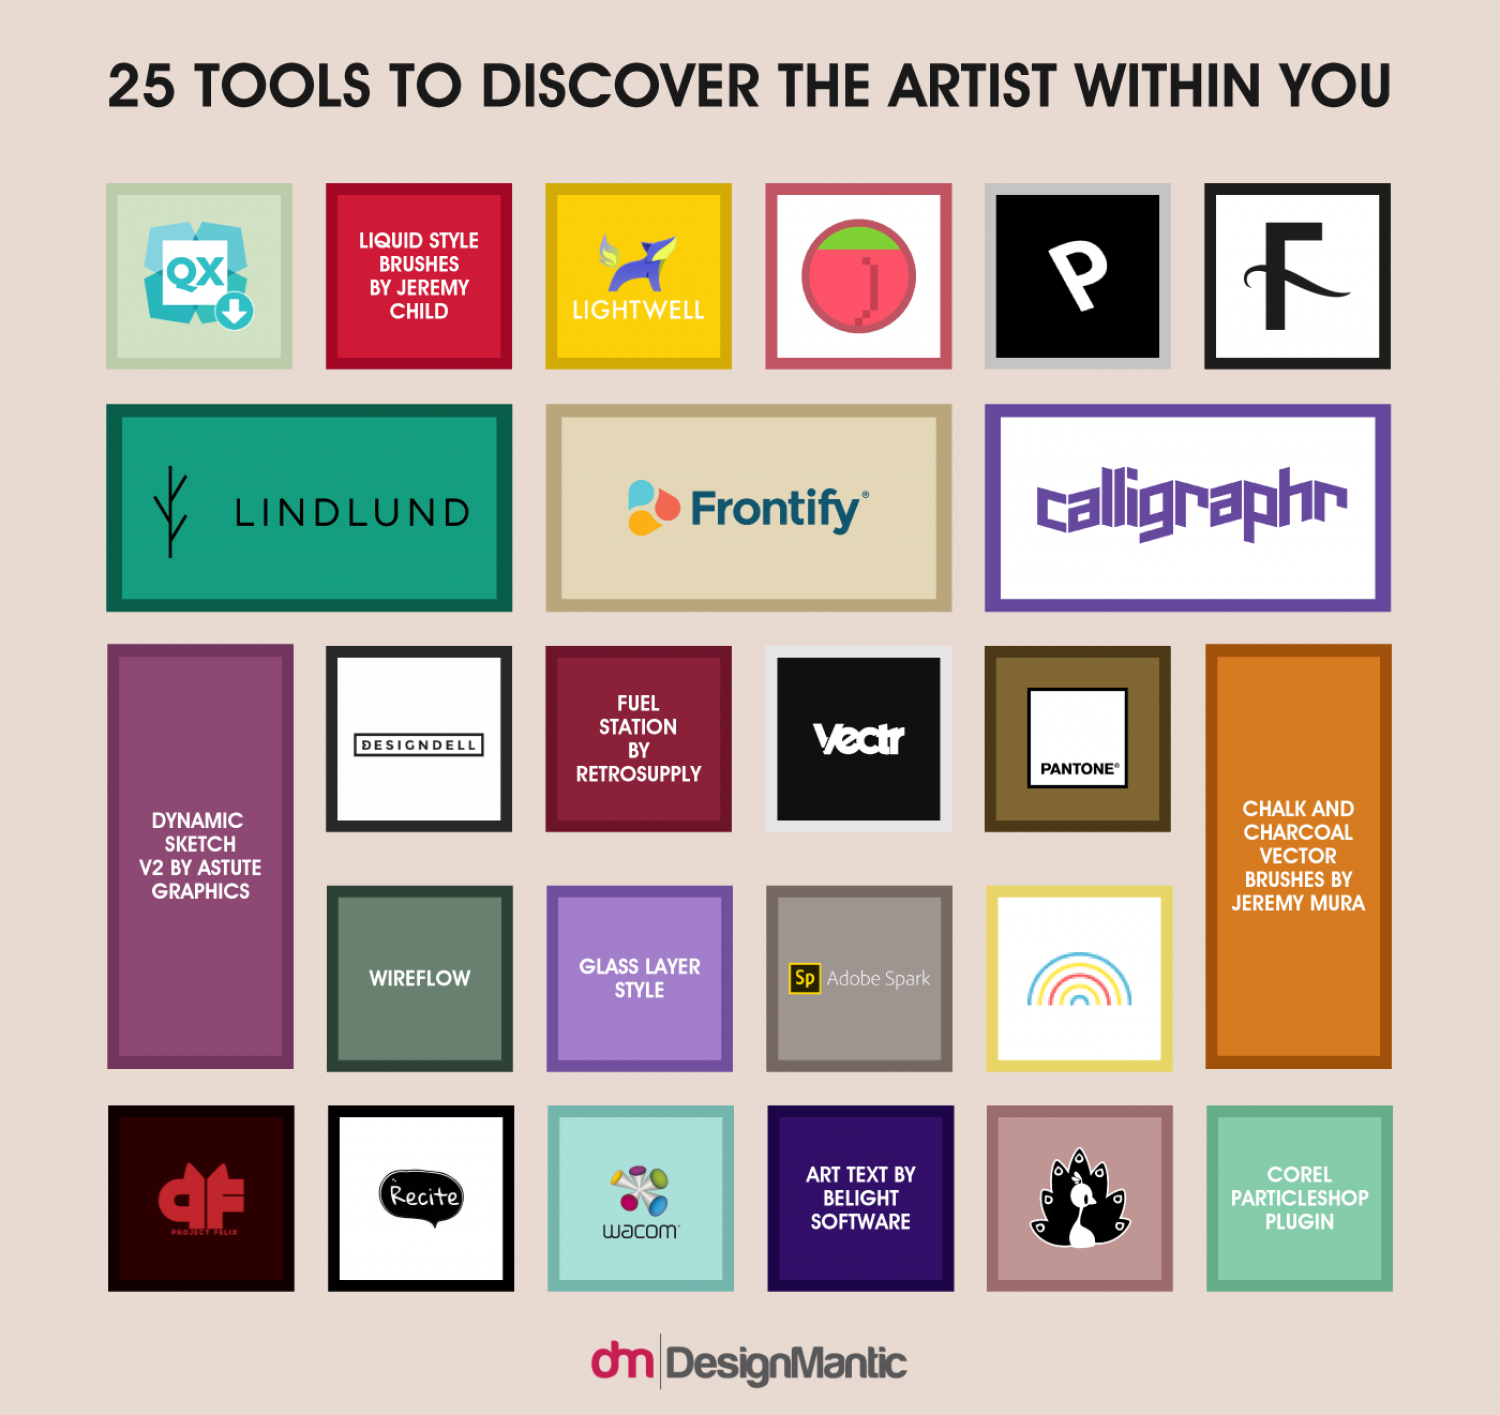 25 Design Tools To Discover The Artist Within You! Infographic